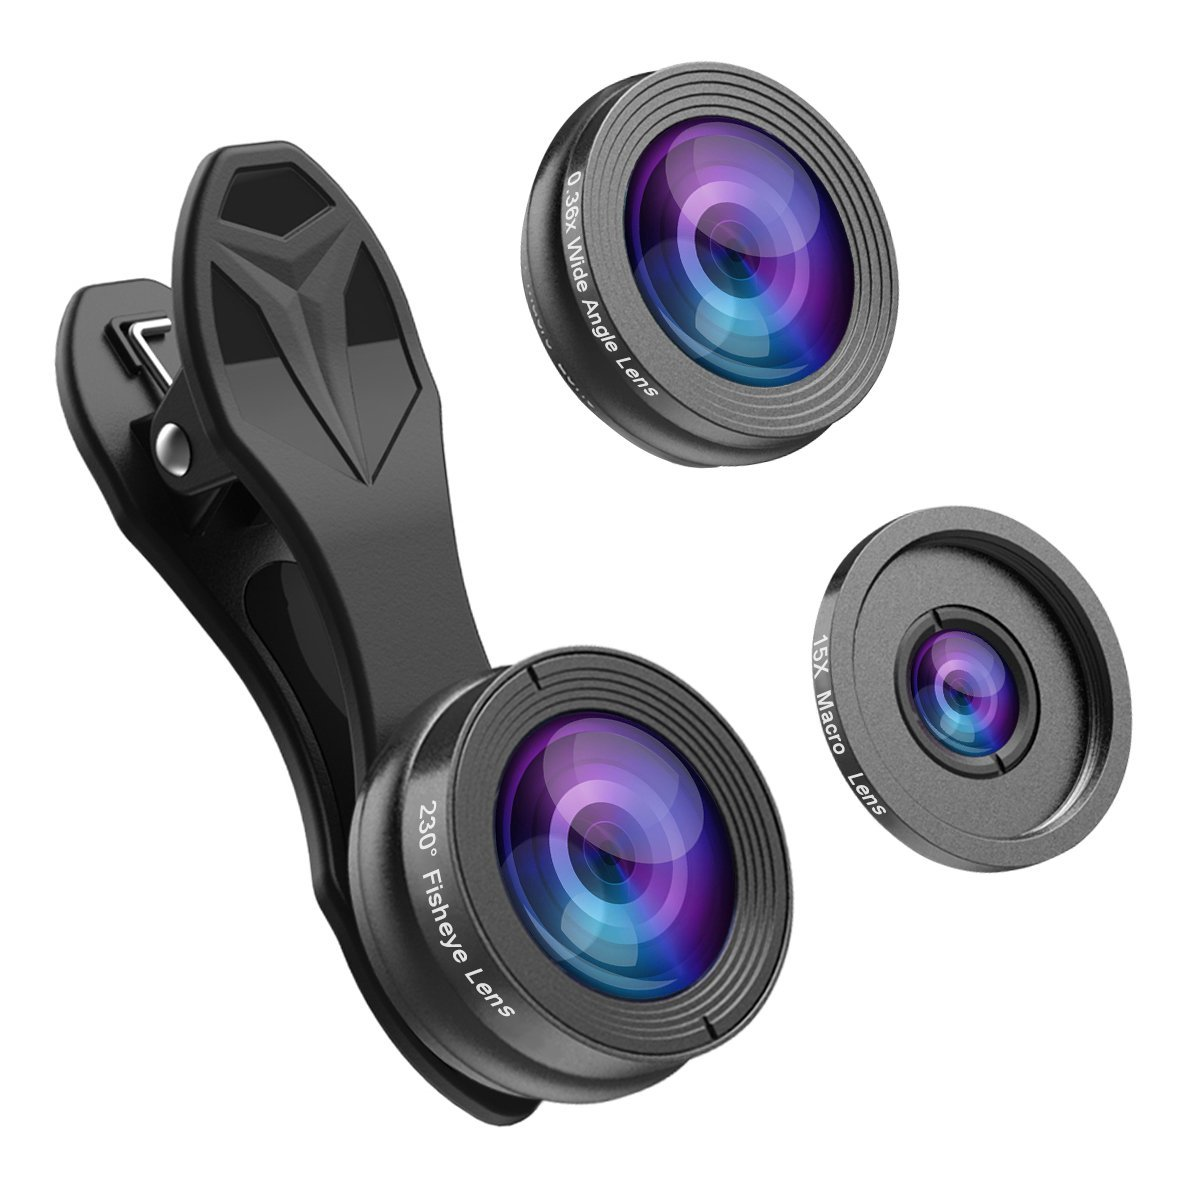 hizek mobile lens set for cell phones